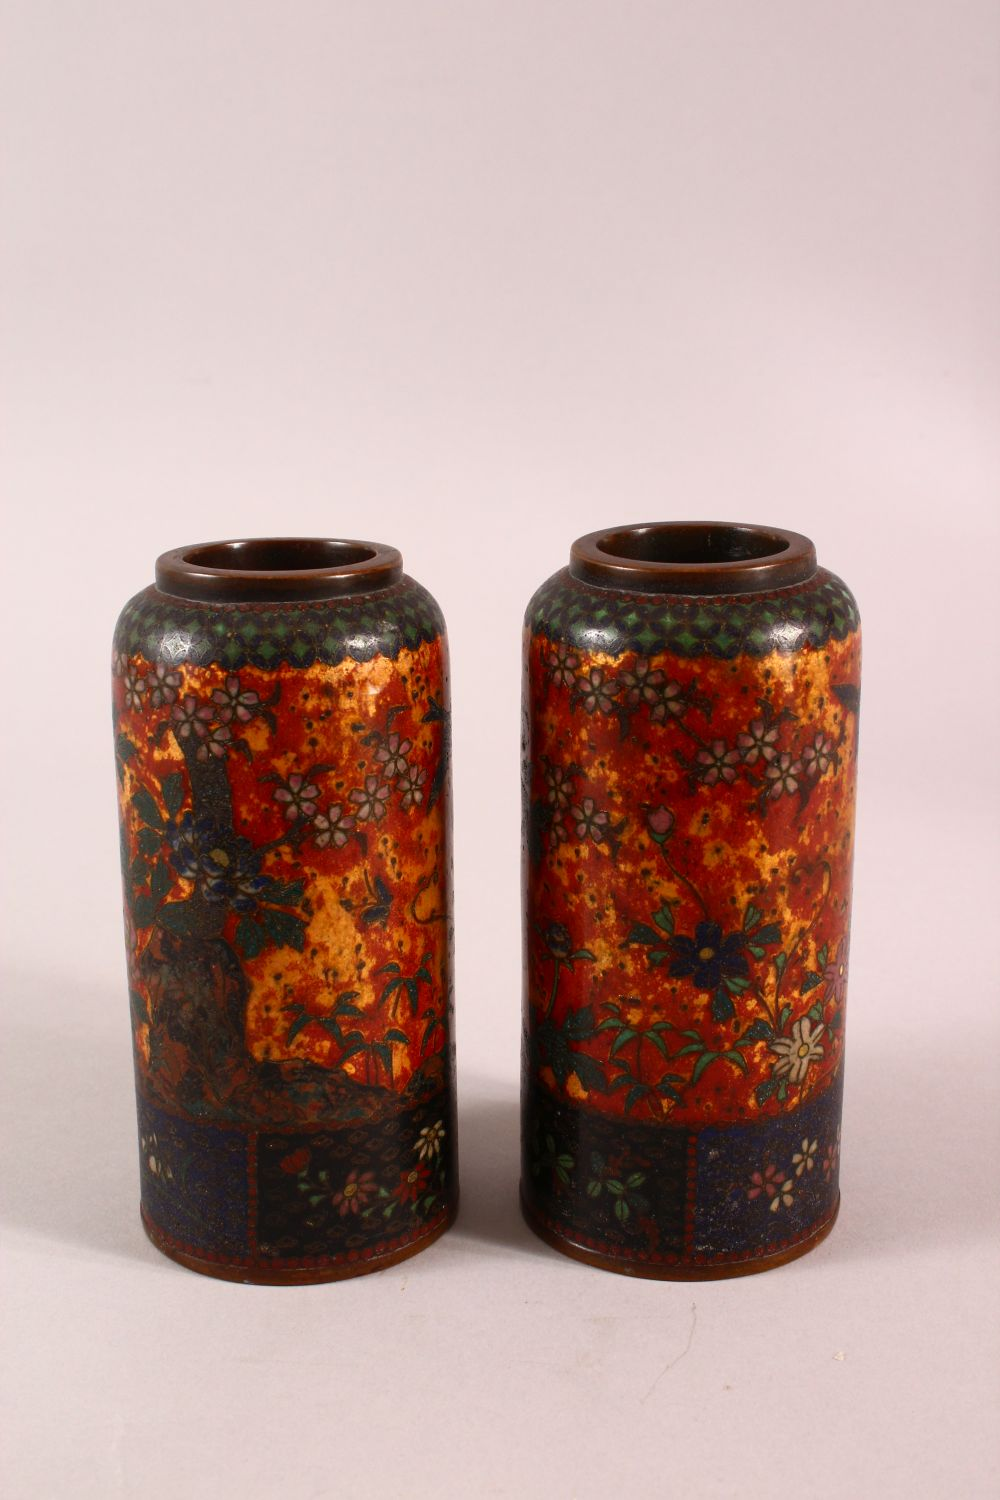 A PAIR OF JAPANESE CLOISONNE VASES OF CYLINDRICAL FORM, gold ground, 15cm high. - Image 2 of 5